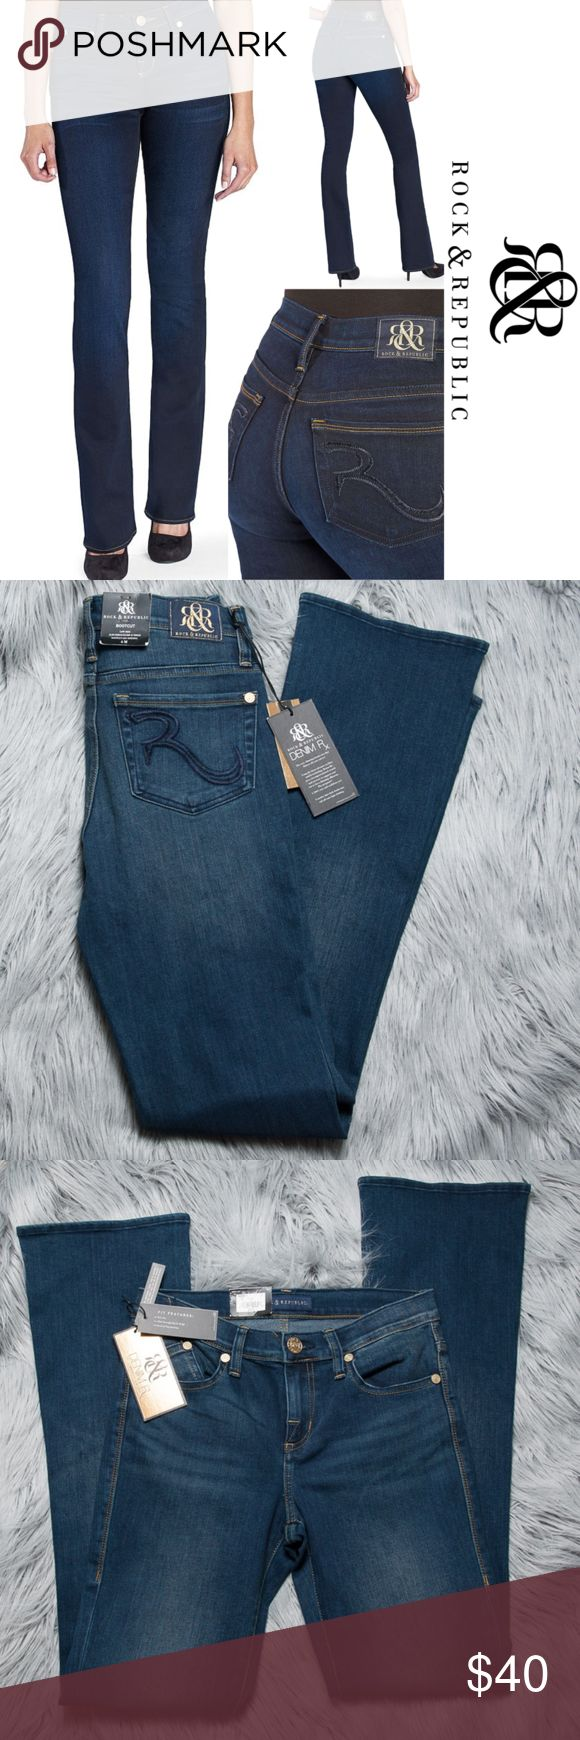 "NWT Rock & Republic Denim Rx Kasandra Bootcut Jean New with tags Rock & Republic jeans - Kasandra bootcut. Size 4. Bootcut styling is fitted through the seat and thigh, flaring out slightly at the knee to give you a figure-flattering look. In dark blue wash. Structured denim construction delivers the latest advances in fiber and fit technology to smooth your silhouette. Unprecedented stretch and recovery supports your curves and slims your shape. 5-pocket.   Approximate measurements - 28""…"